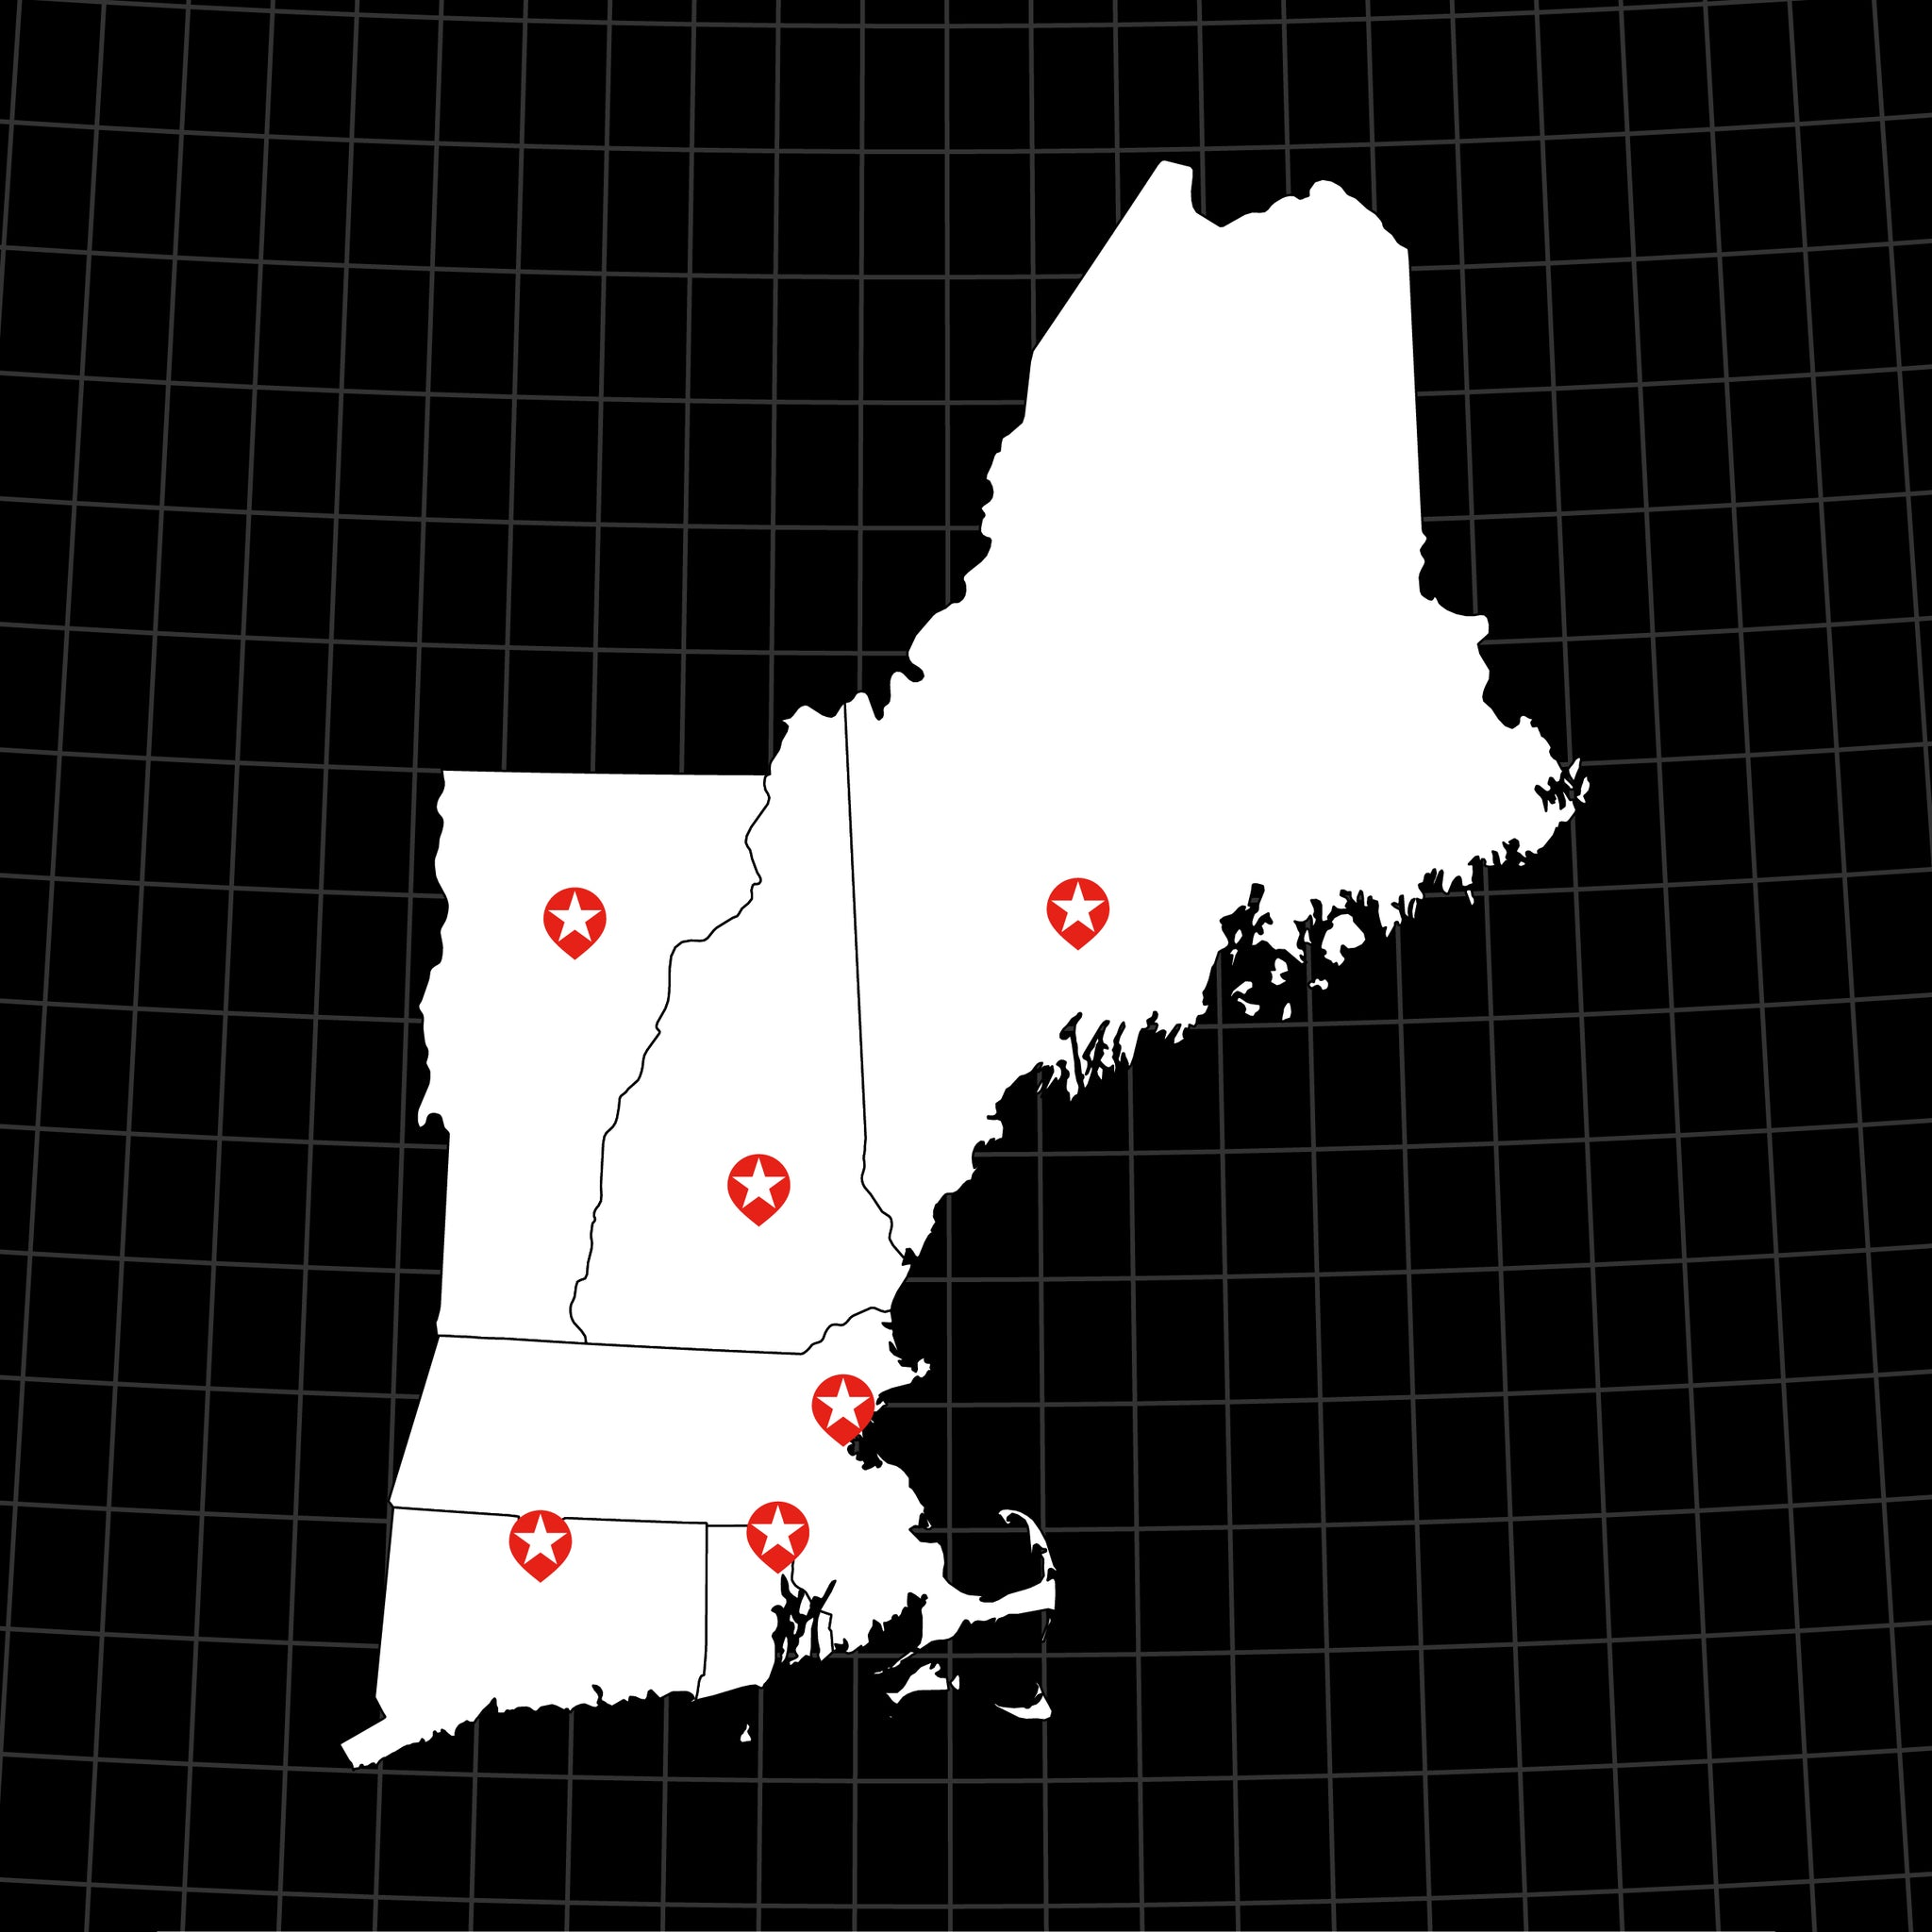 Digital Vector Map of USA: New England States